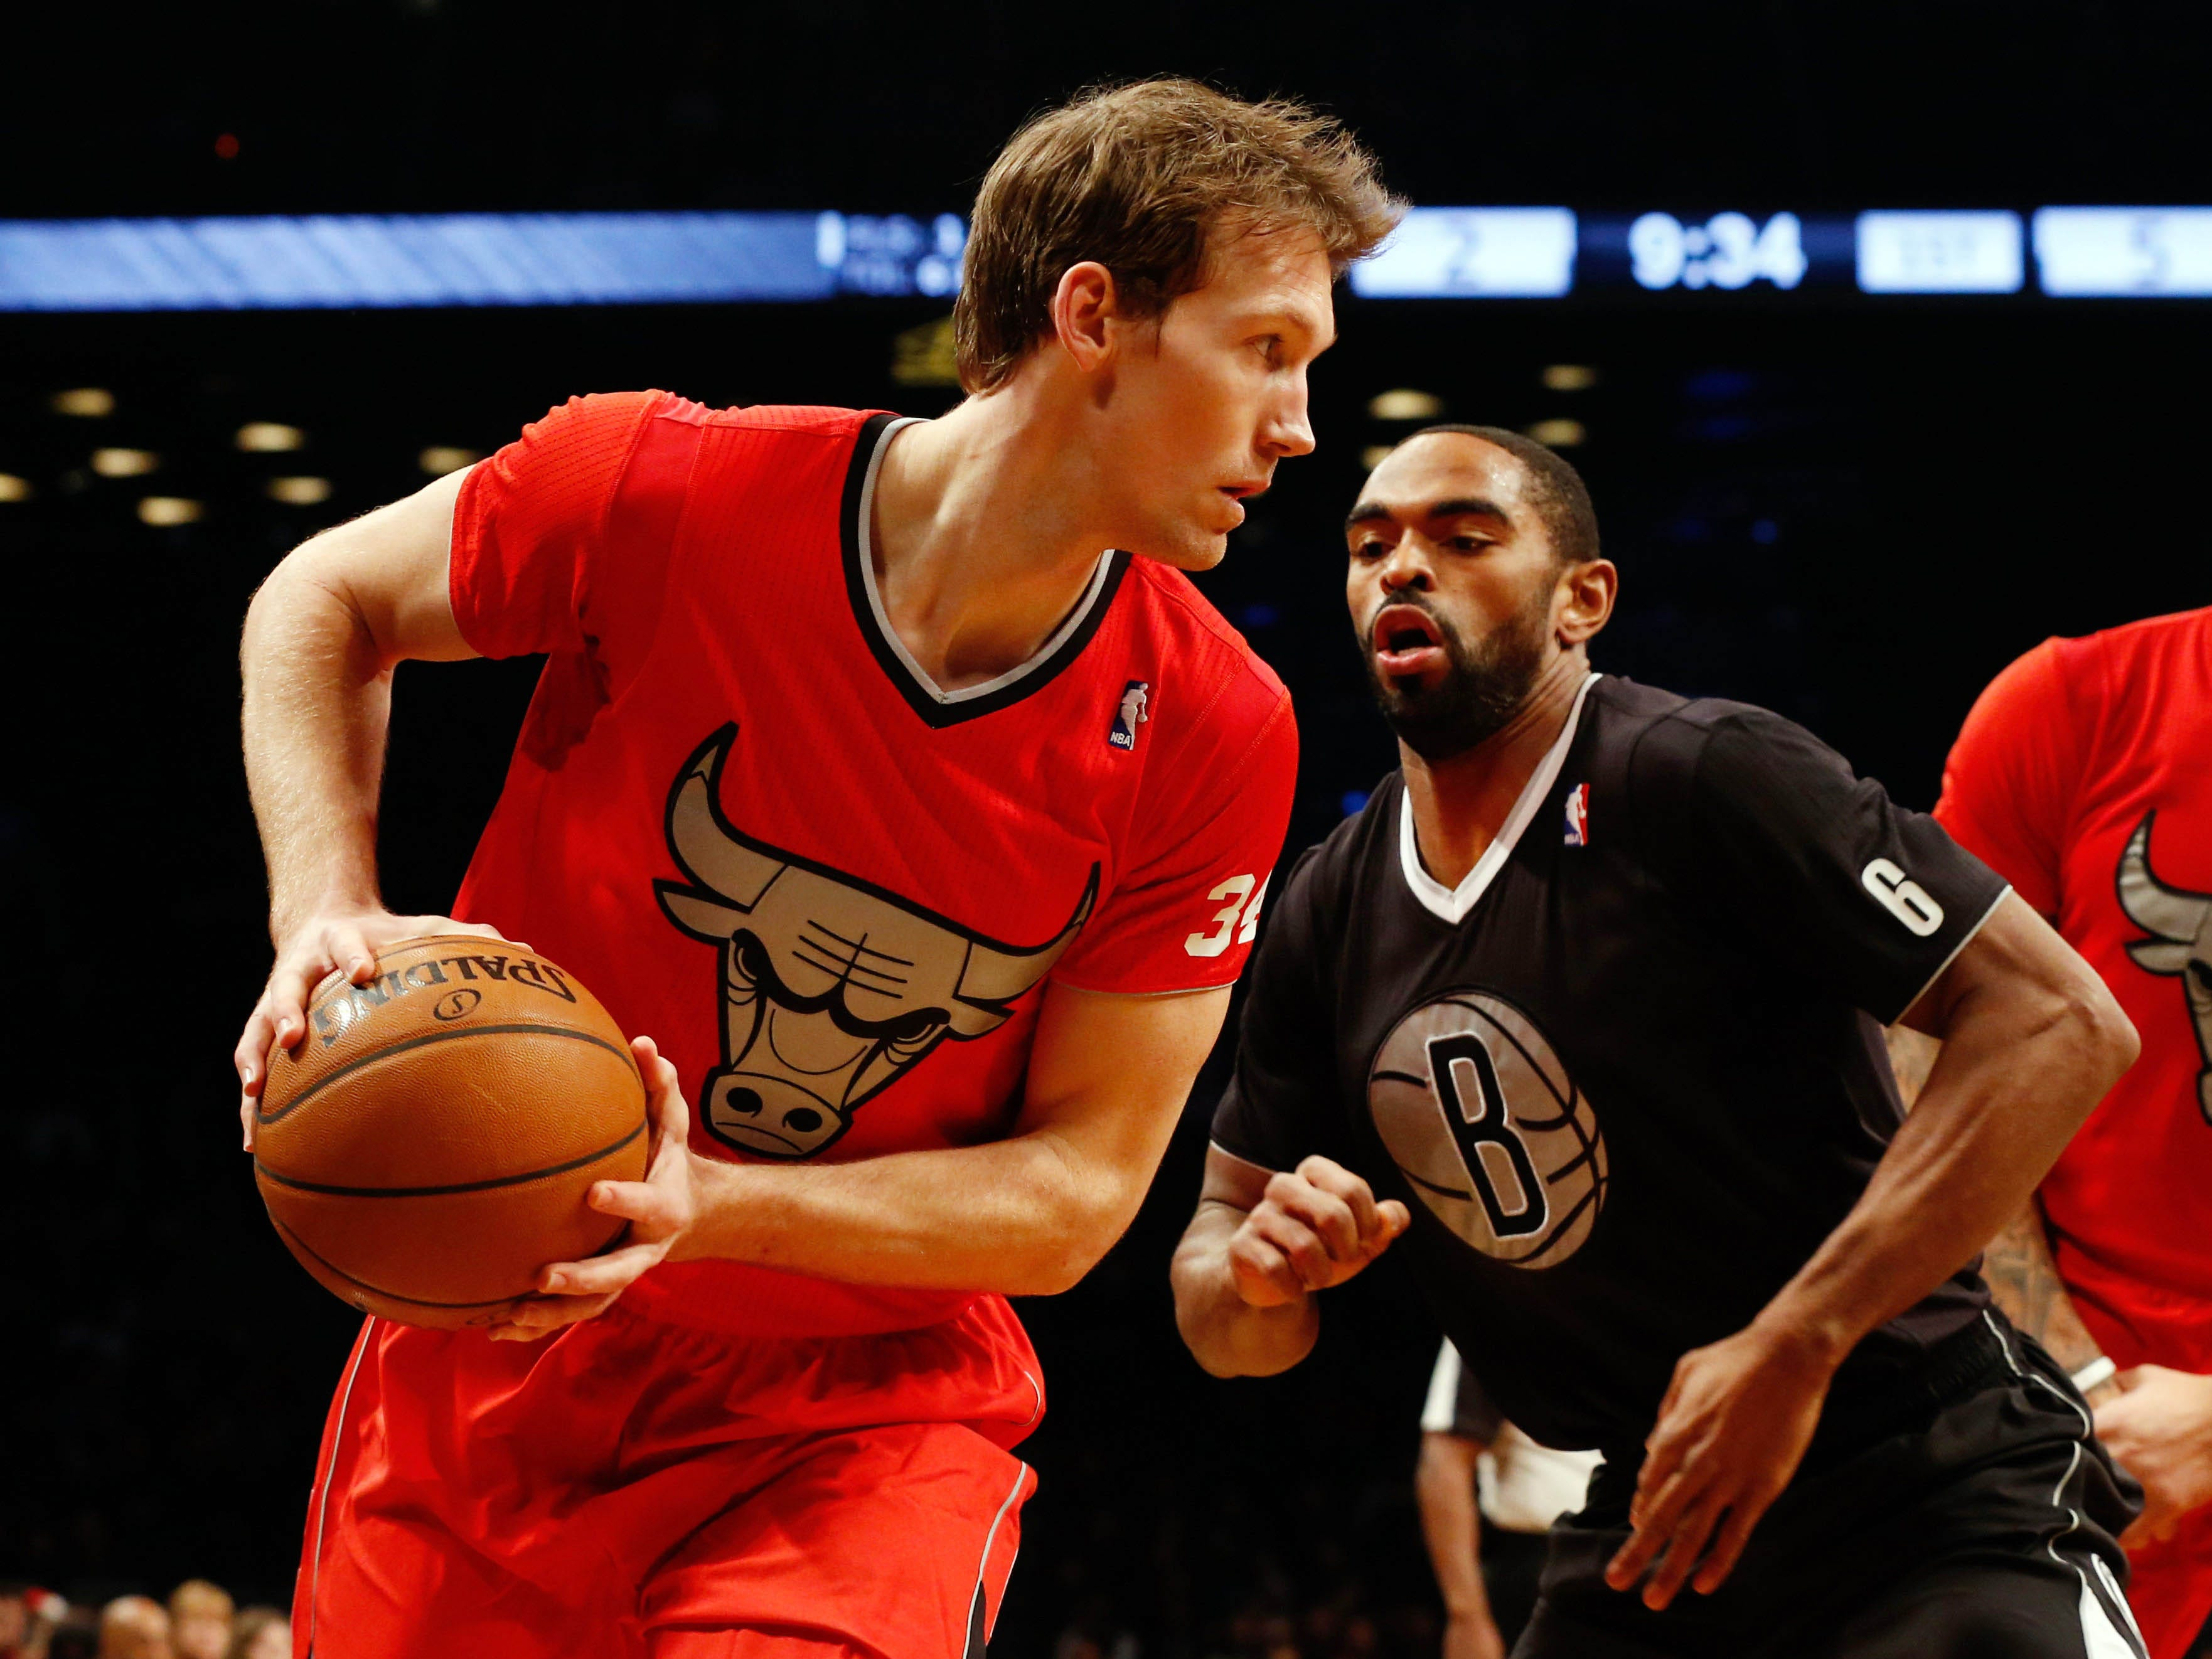 These were the NBA's 2013 version of Christmas sweaters worn by Bulls small forward Mike Dunleavy (left).